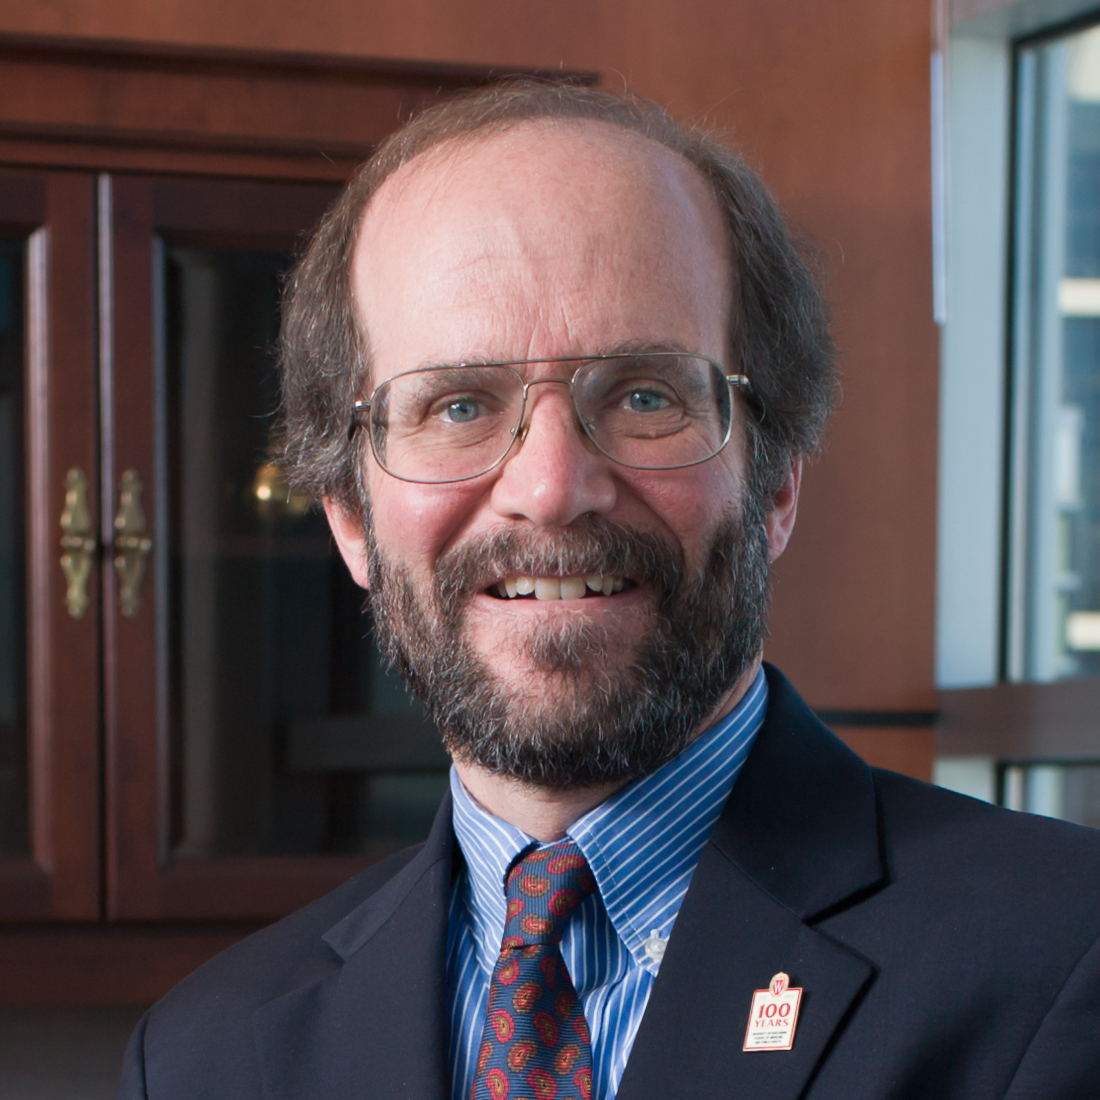 Robert Golden, MD. Dean, UW School of Medicine and Public Health